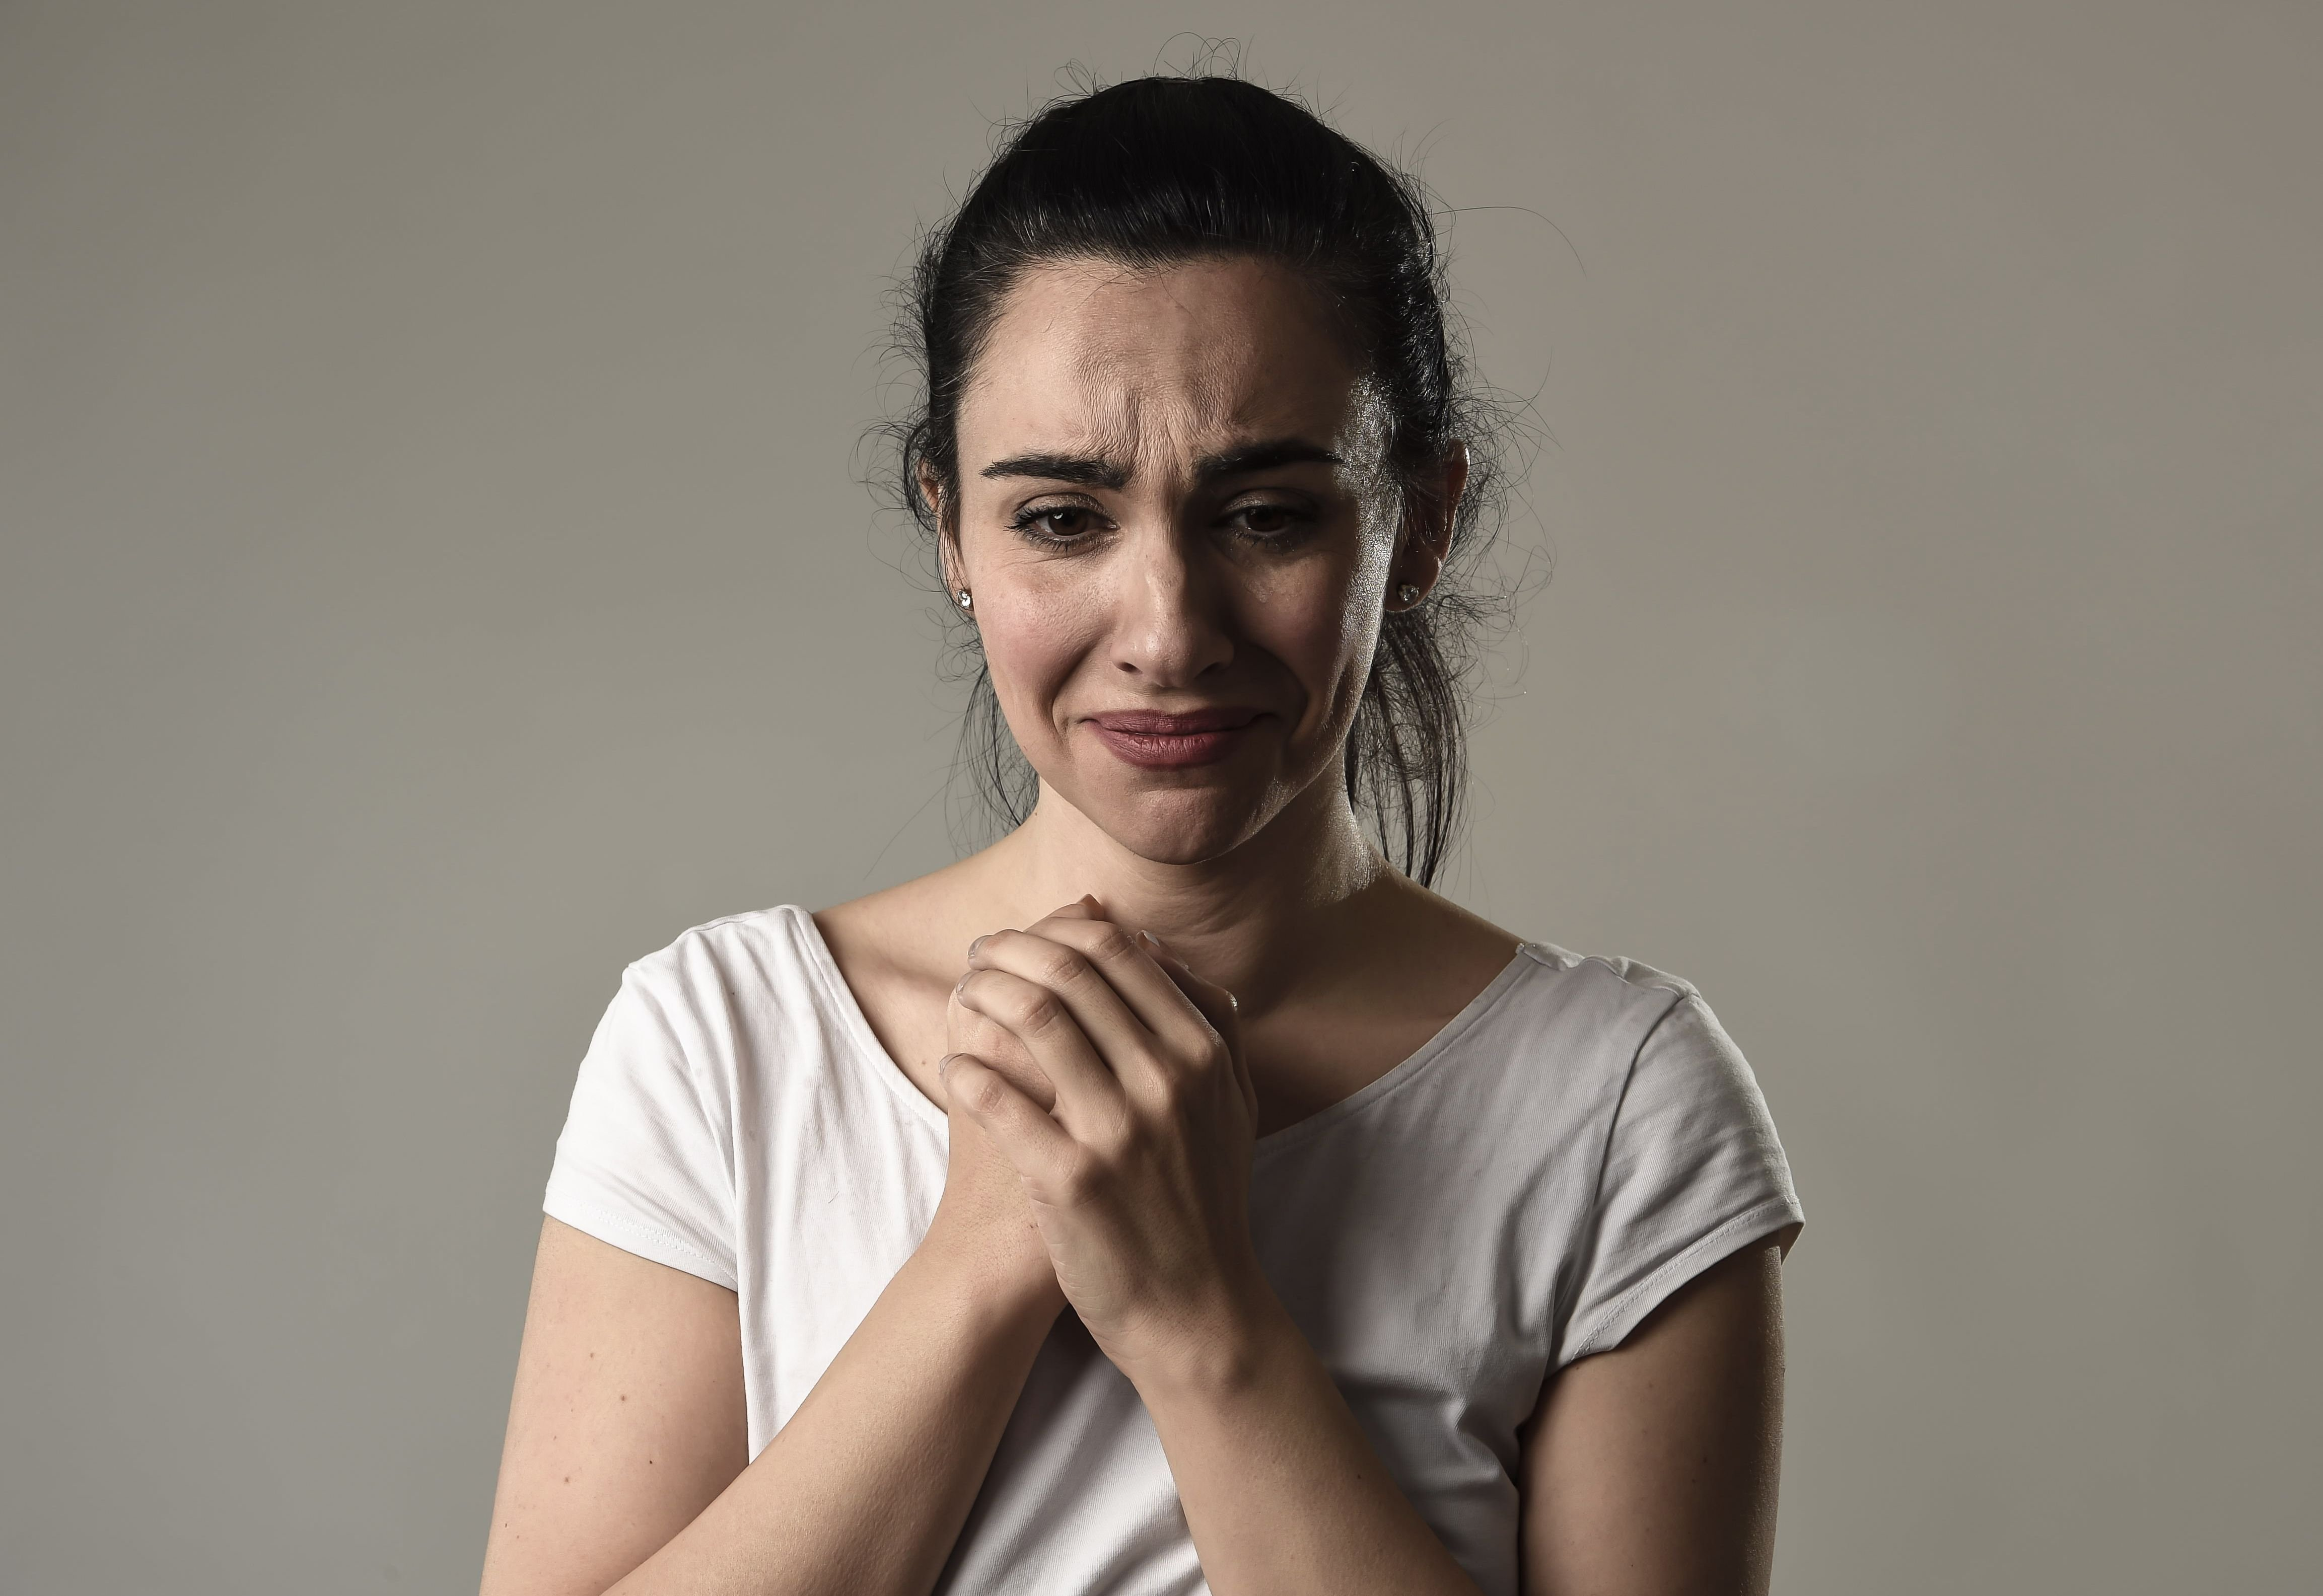 A woman crying. │Source: Shutterstock